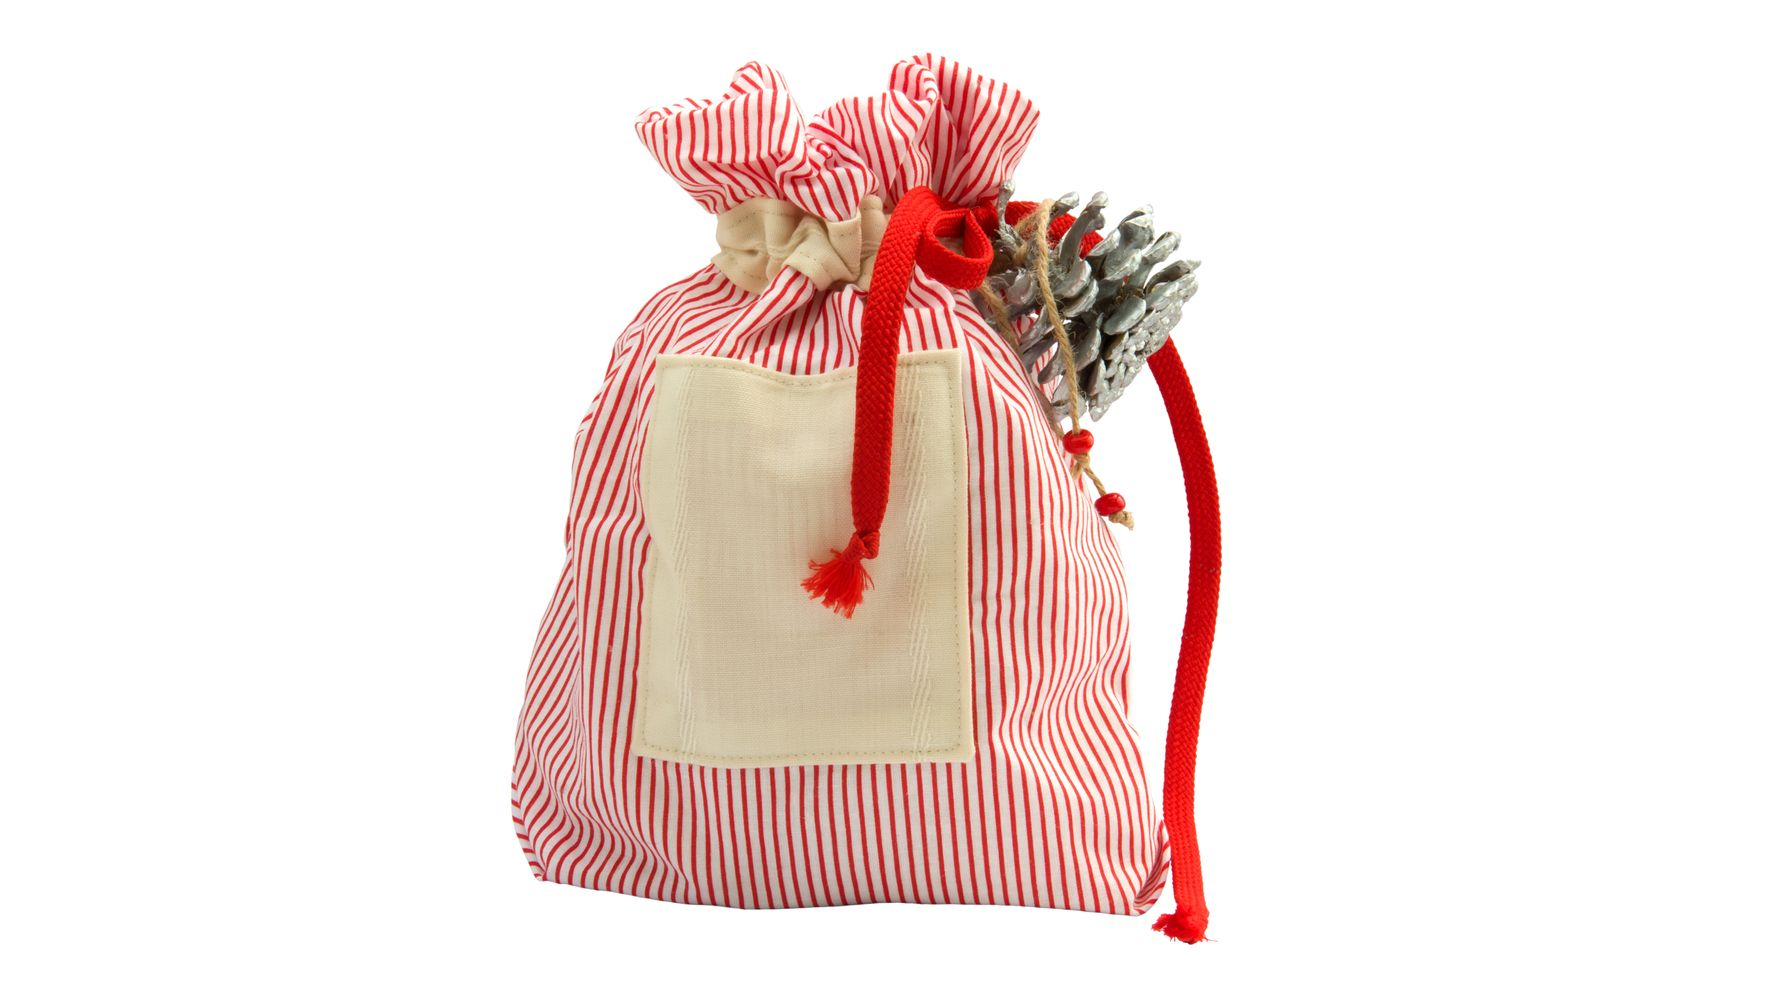 Fabric Bags Are A Good Way To Go Green During The Holidays